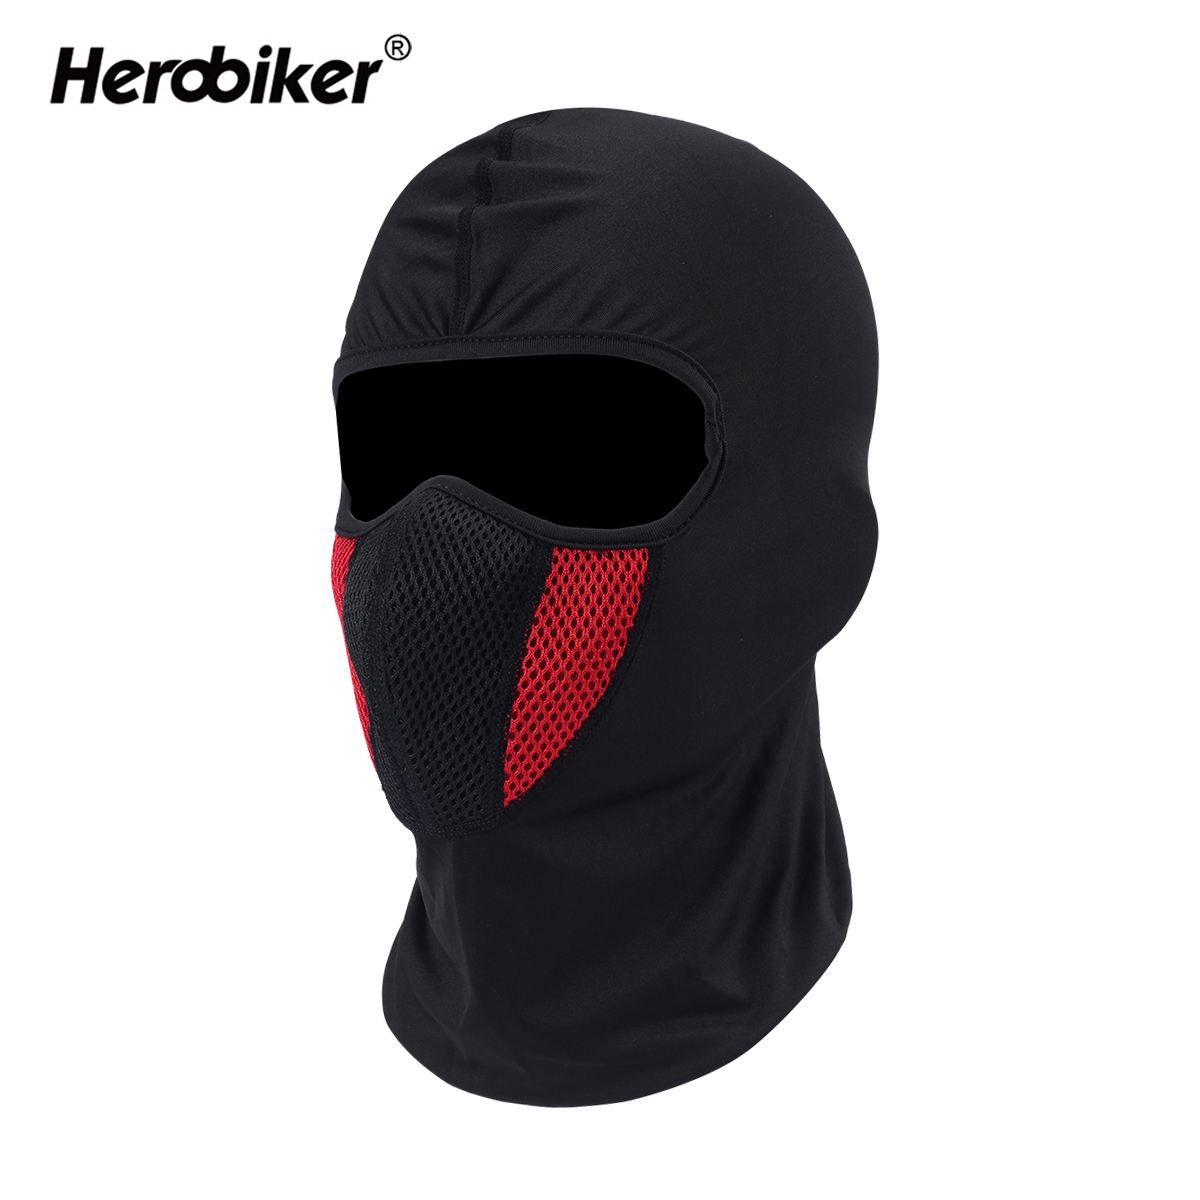 HEROBIKER Balaclava Moto Gesichtsmaske Motorrad Taktische Airsoft Paintball Cycling Bike Ski Armee Helm Schutz Volle Gesichtsmaske